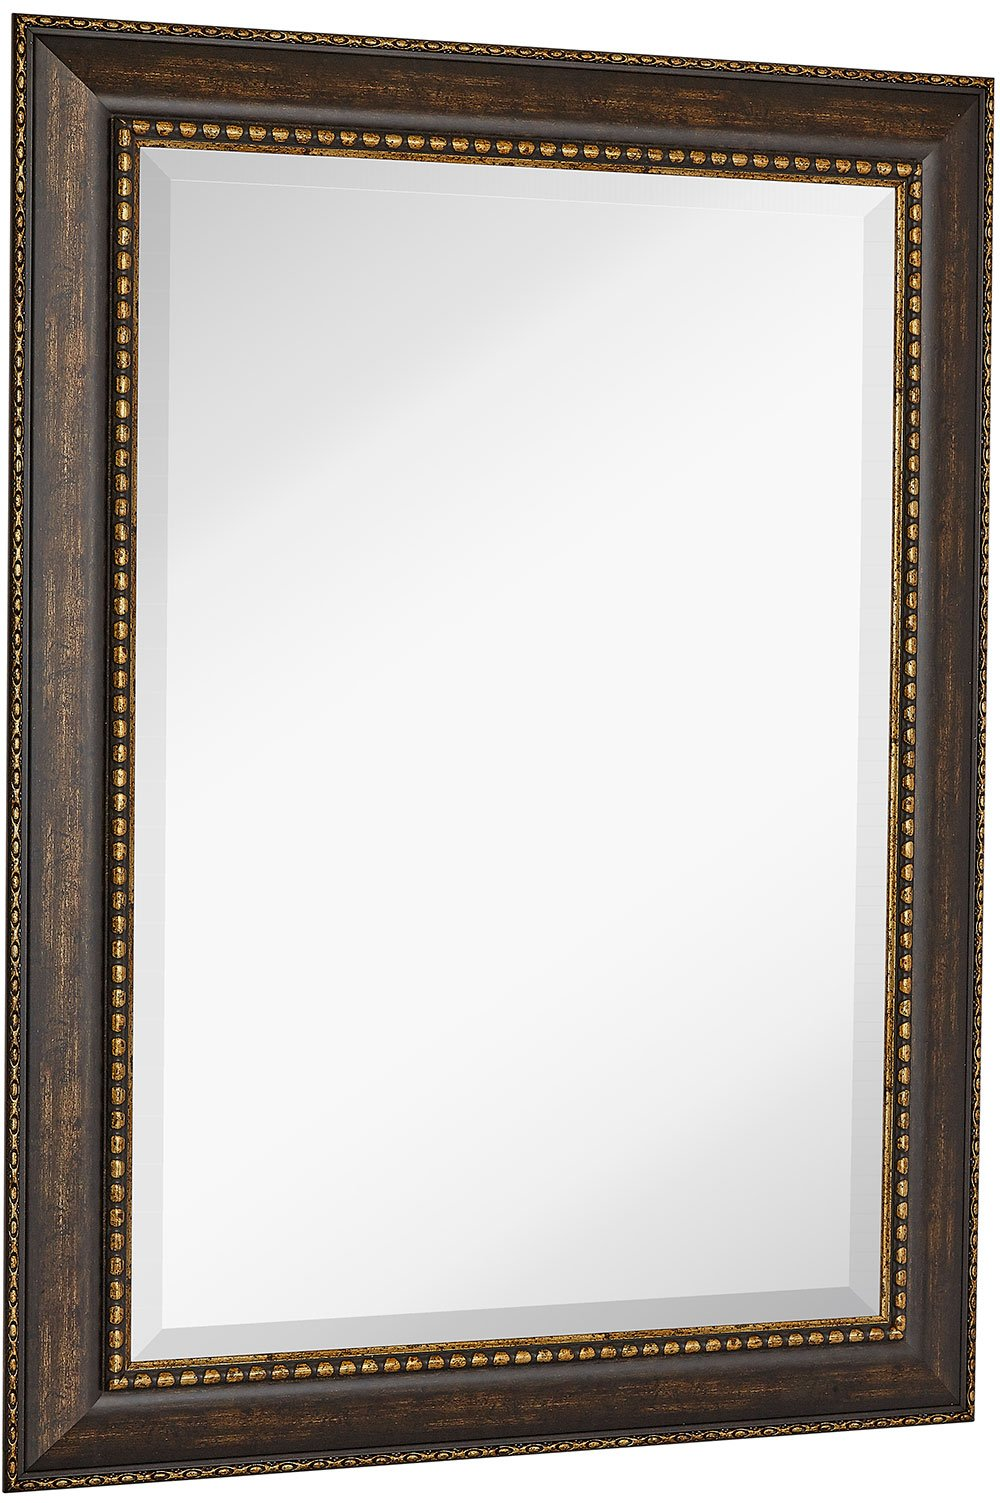 NEW Large Embellished Transitional Rectangle Wall Mirror | Luxury Designer Accented Frame | Solid Beveled Glass| Made In USA | Vanity, Bedroom, or Bathroom | Hangs Horizontal or Vertical 30'' x 40''